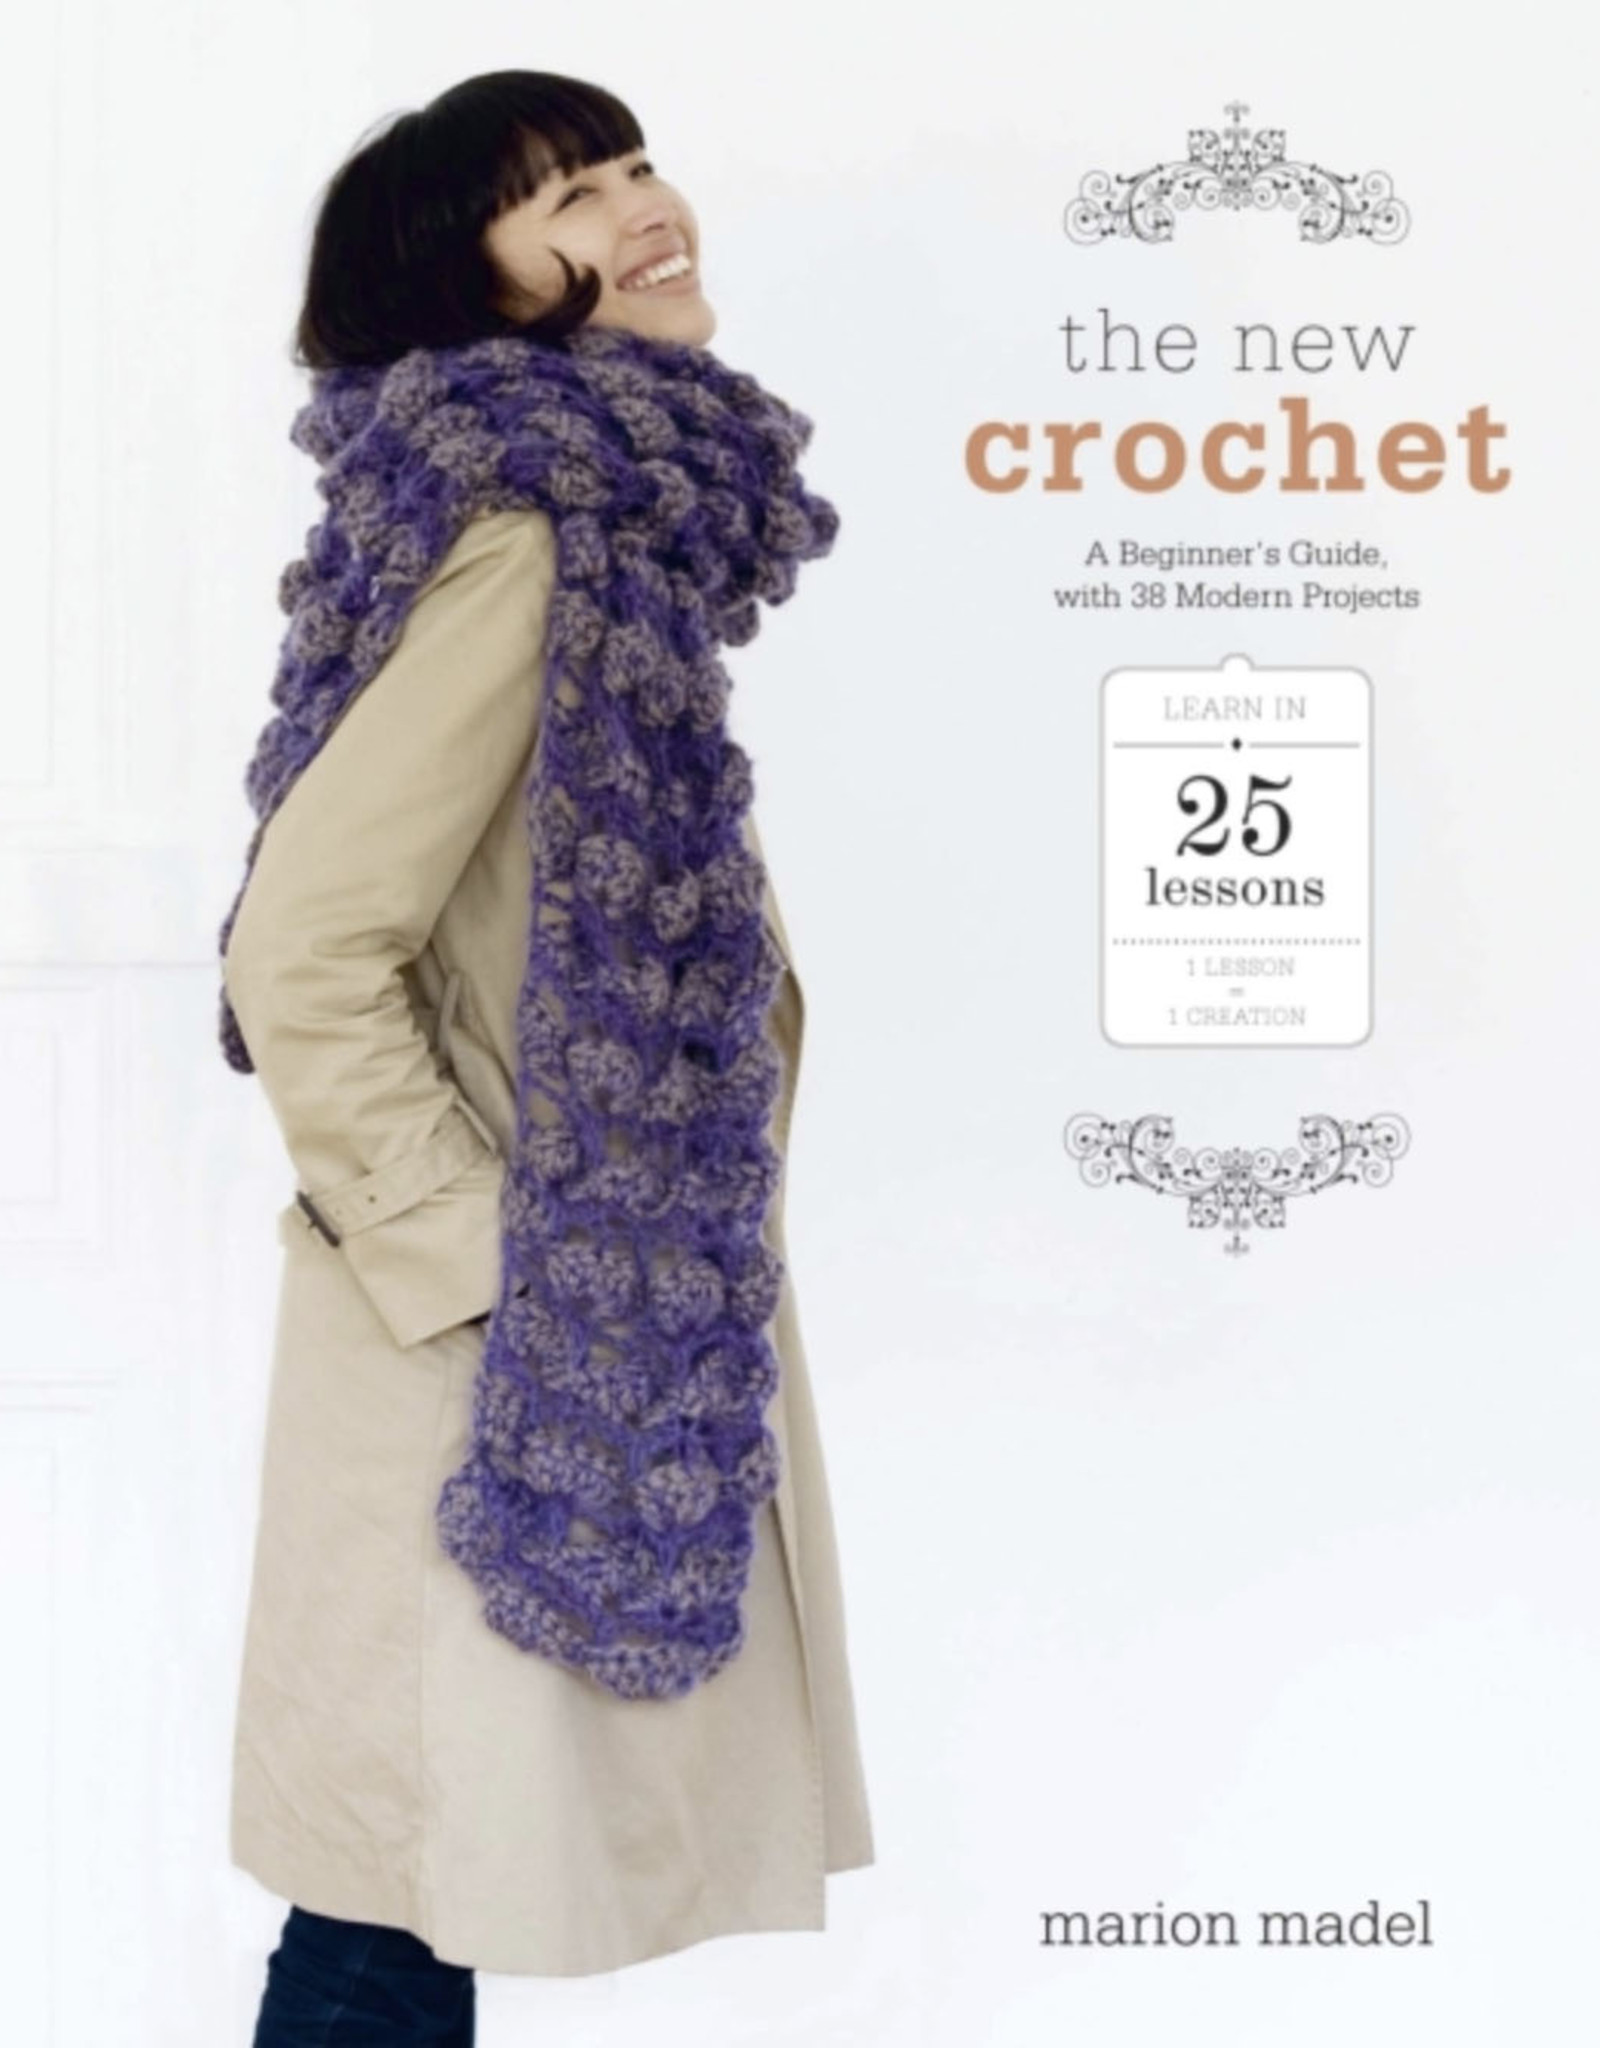 The New Crochet by Marian Madel